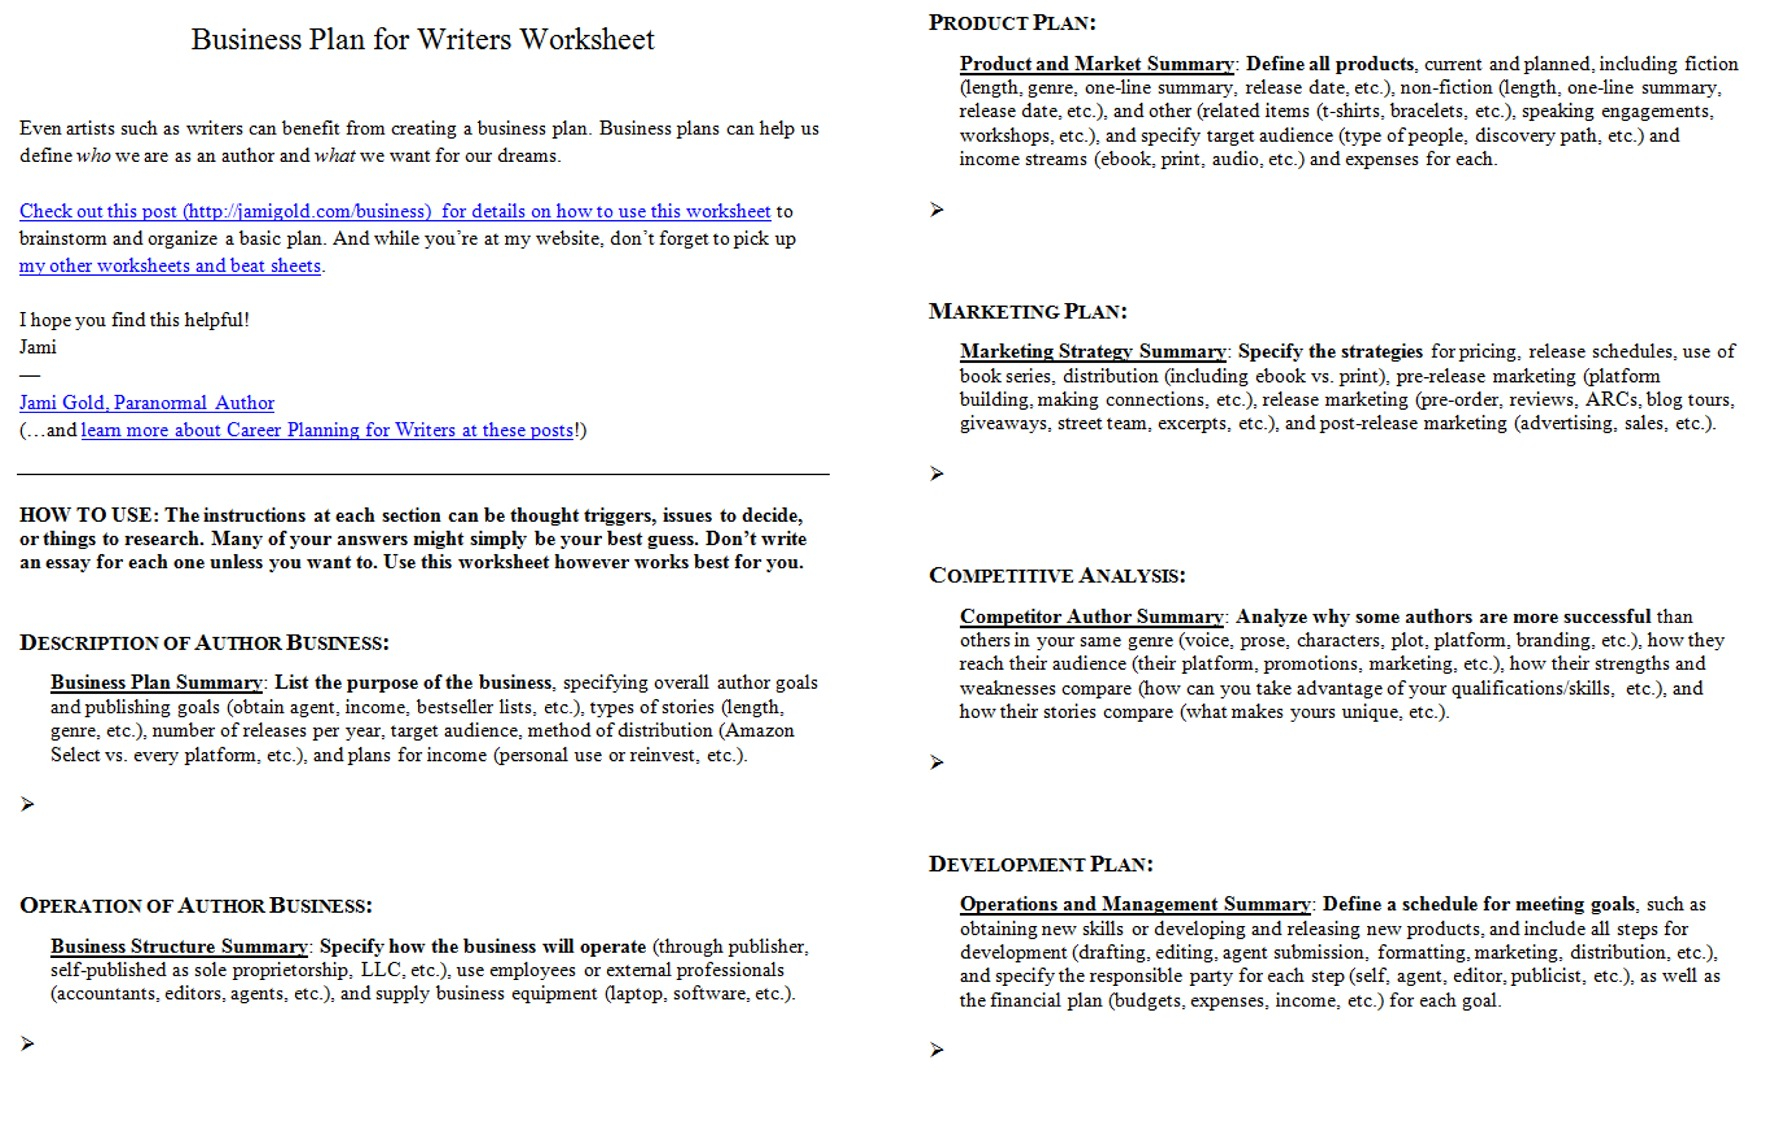 Weirdmailus  Terrific Worksheets For Writers  Jami Gold Paranormal Author With Marvelous Screen Shot Of Both Pages Of The Business Plan For Writers Worksheet With Awesome Class  Maths Worksheets Also Maths Worksheets For Year  In Addition Tangram Worksheets Printable And Year  Maths Word Problems Worksheets As Well As Printable Valentine Worksheets Additionally Free Printable Area Worksheets From Jamigoldcom With Weirdmailus  Marvelous Worksheets For Writers  Jami Gold Paranormal Author With Awesome Screen Shot Of Both Pages Of The Business Plan For Writers Worksheet And Terrific Class  Maths Worksheets Also Maths Worksheets For Year  In Addition Tangram Worksheets Printable From Jamigoldcom